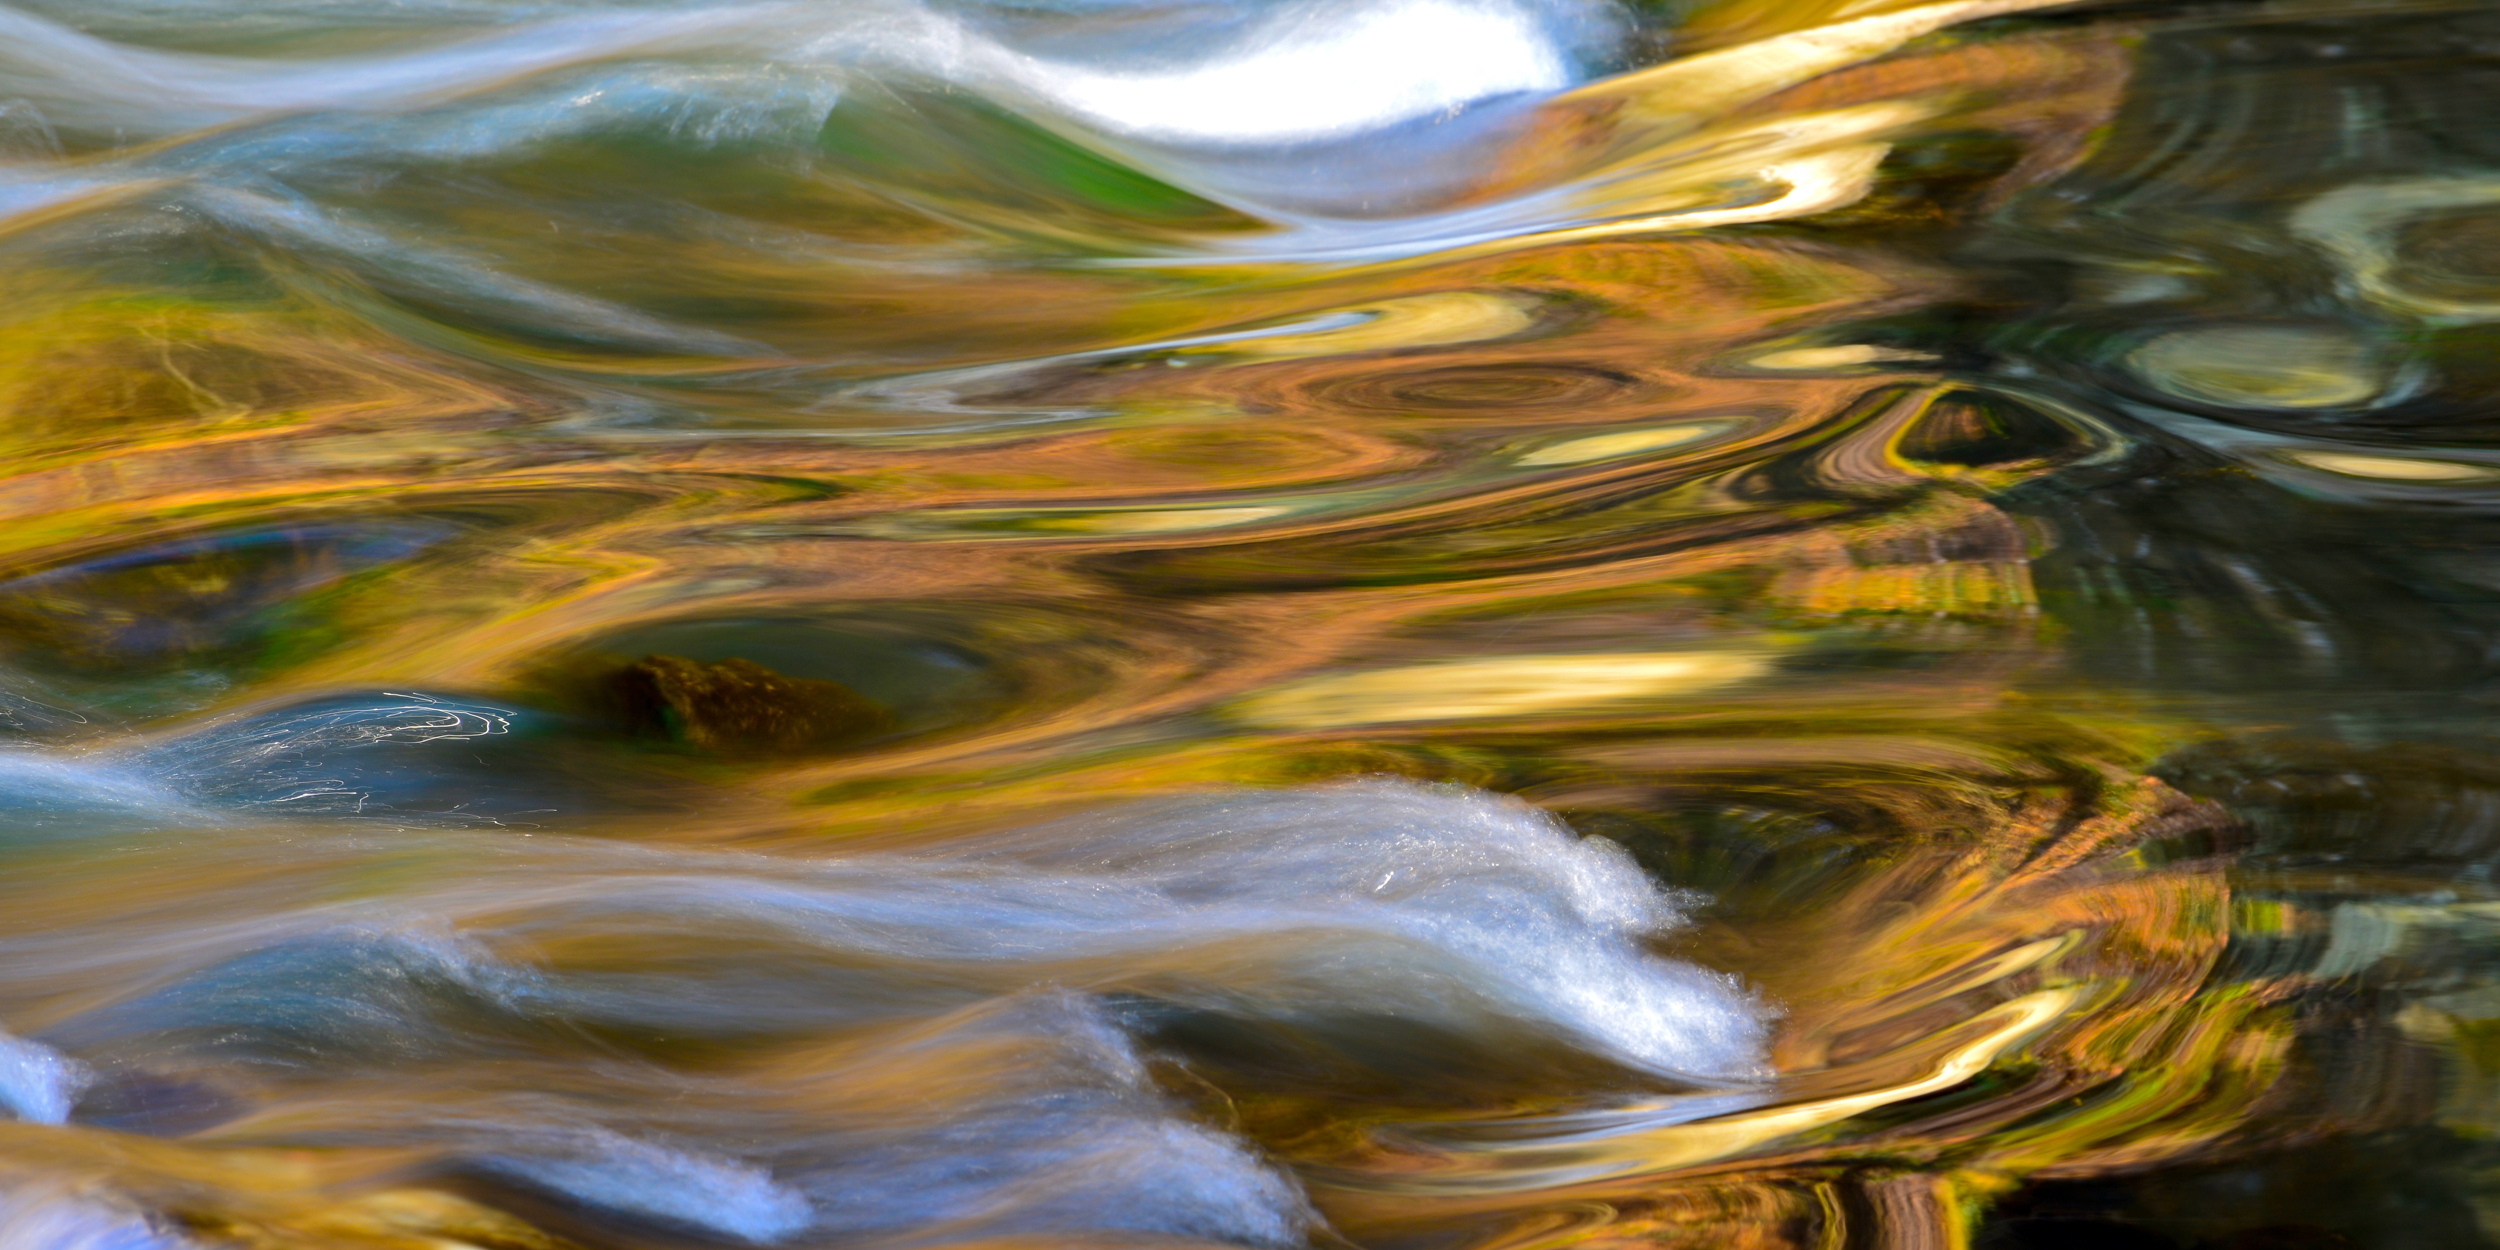 A colorful water reflection in Wissahickon Park in Philadelphia.